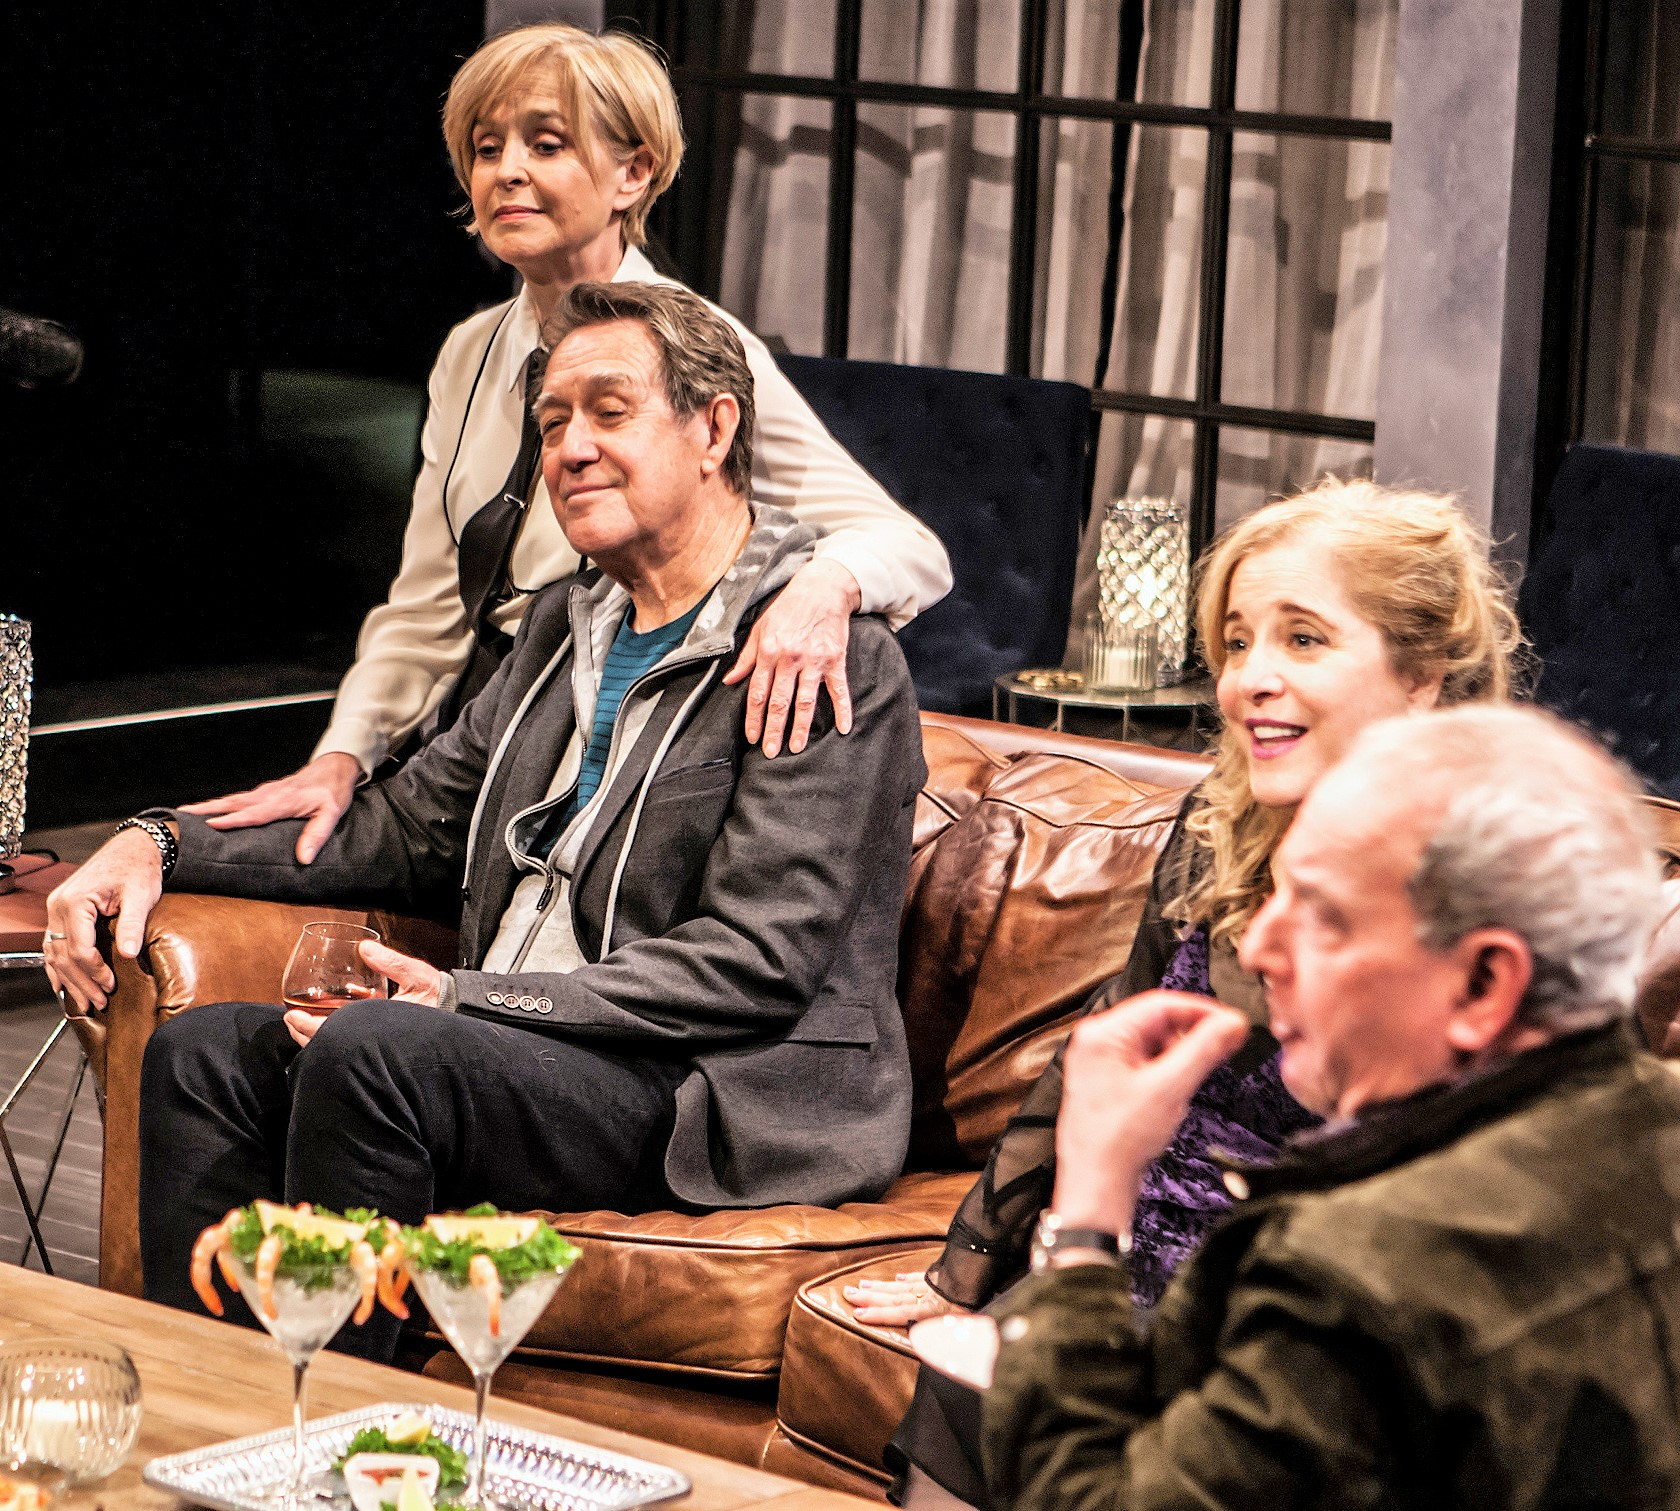 From left: Jill Eikenberry is Nellie, Larry Pine is Tom, Claudia Shear is Annette, and Michael Tucker is Bill, in Wallace Shawn's  Evening at the Talk House . Top: Matthew Broderick (left) plays the playwright Robert, and Annapurna Sriram is Jane.